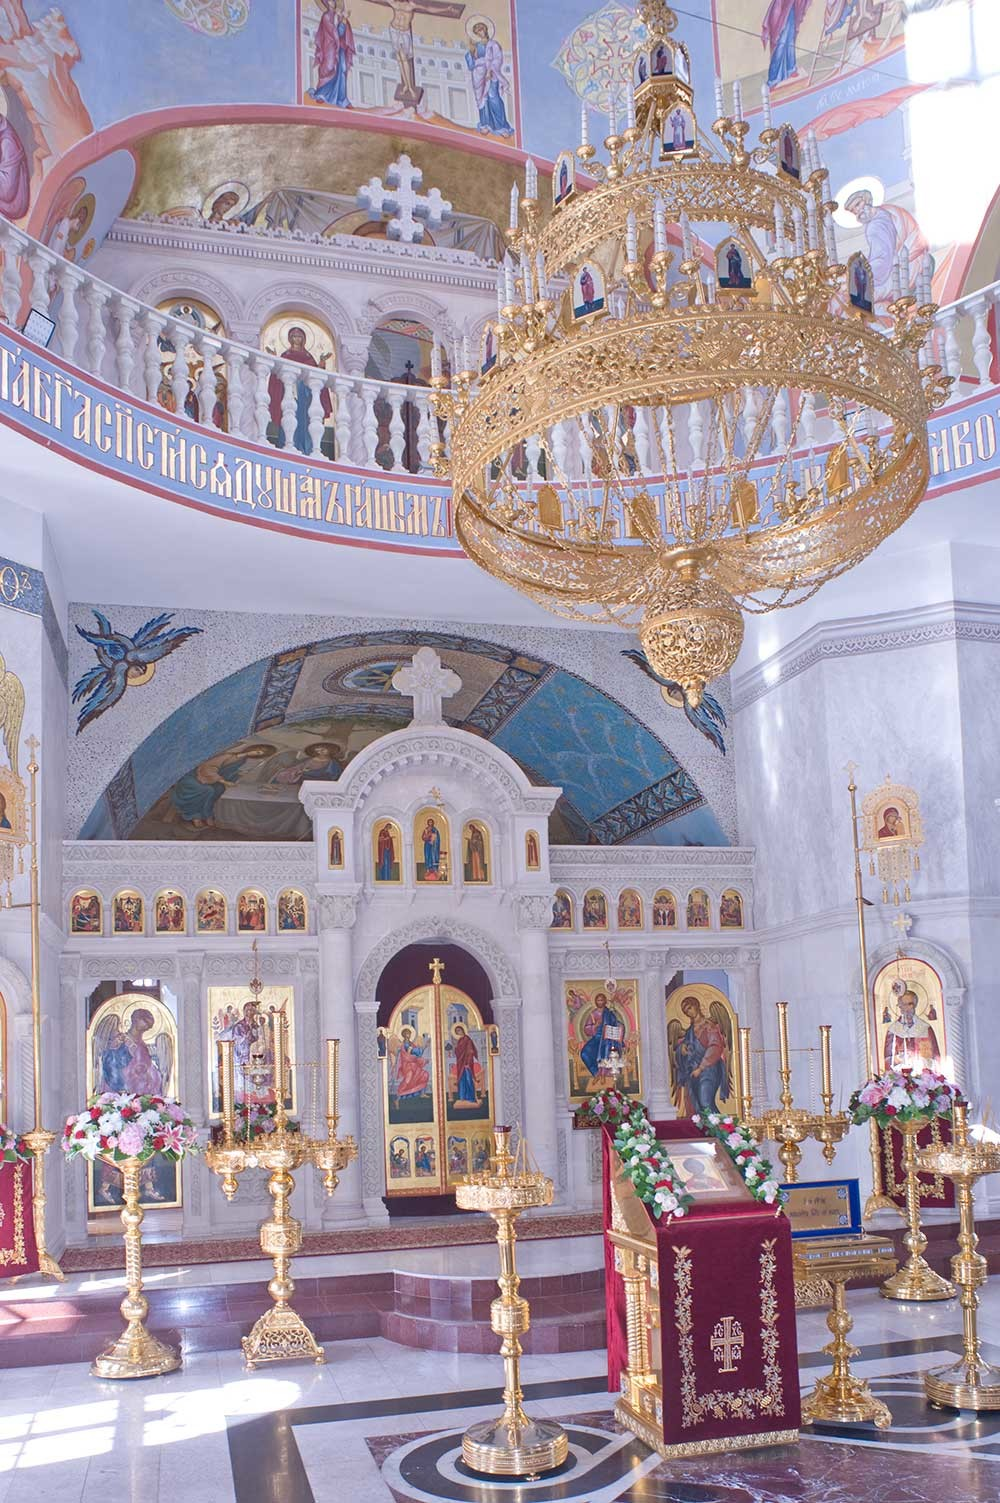 St. Nicholas-Chernoostrovsky Convent. Cathedral of St. Nicholas, interior with new icon screen. August 8, 2016